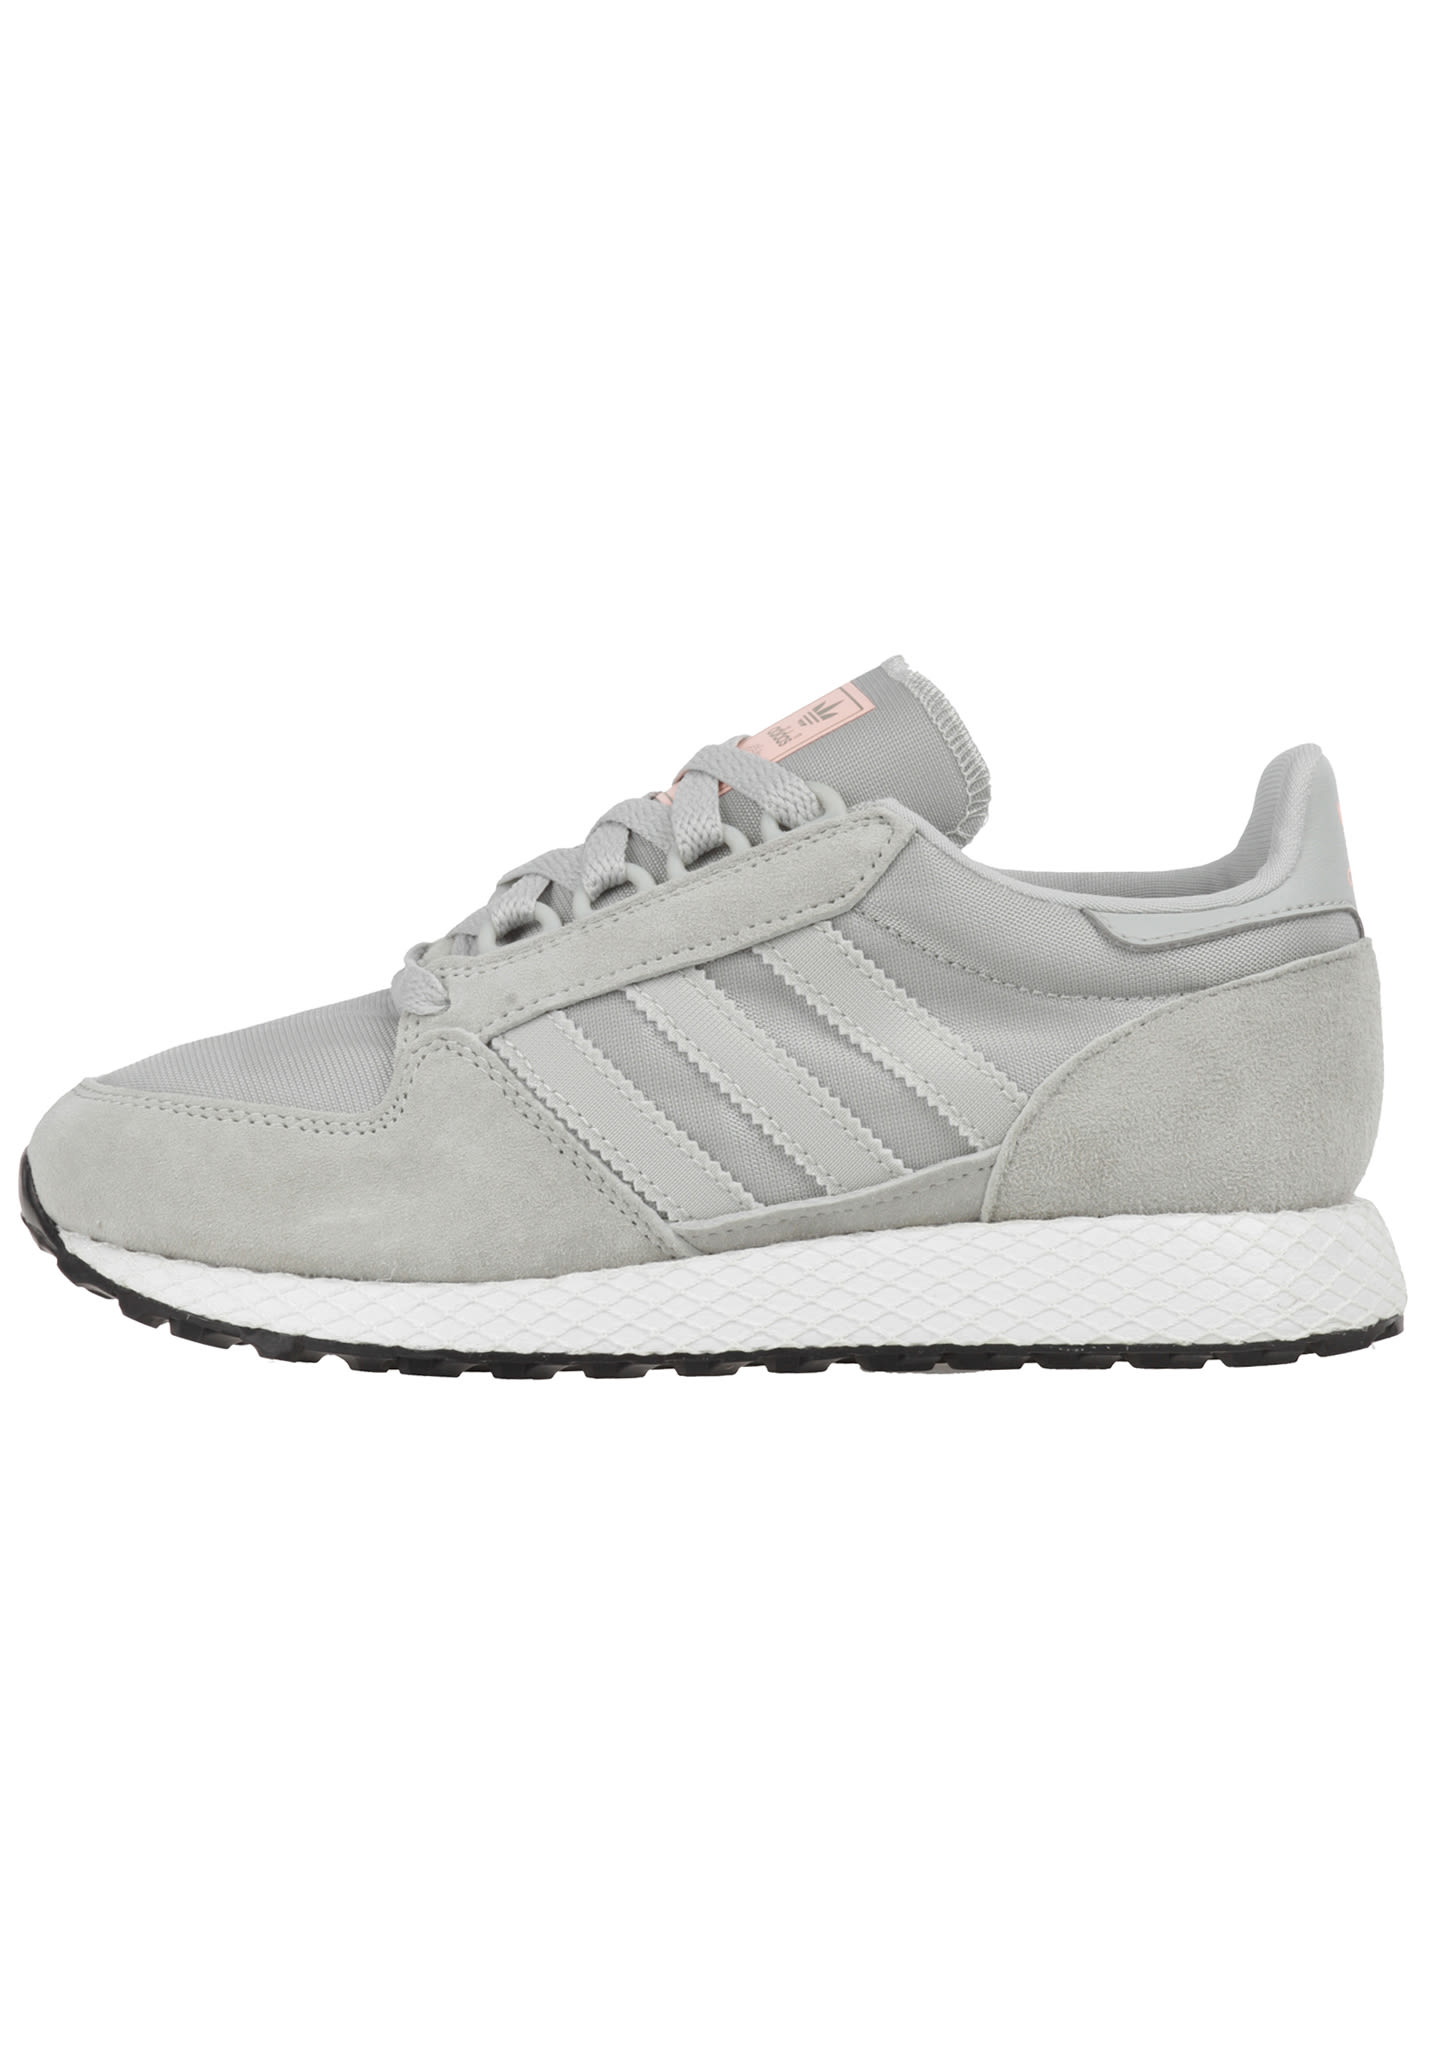 adidas Originals Forest Grove - Sneaker für Damen - Grau